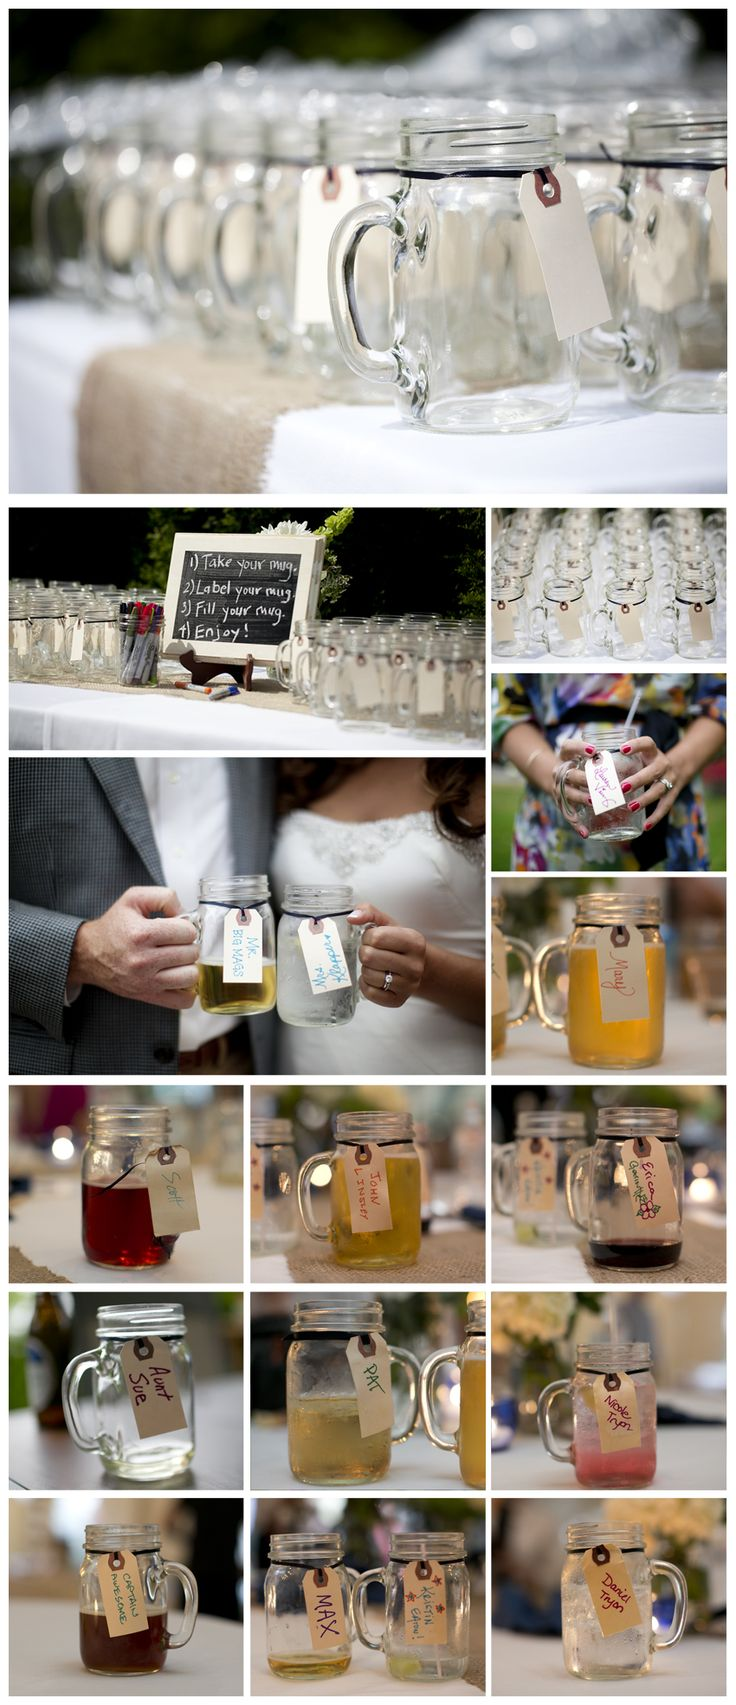 wedding photography giveaway http://www.shawphotoco.com/wedding-photography-giveaway/ backyard wedding mason jars for drinking